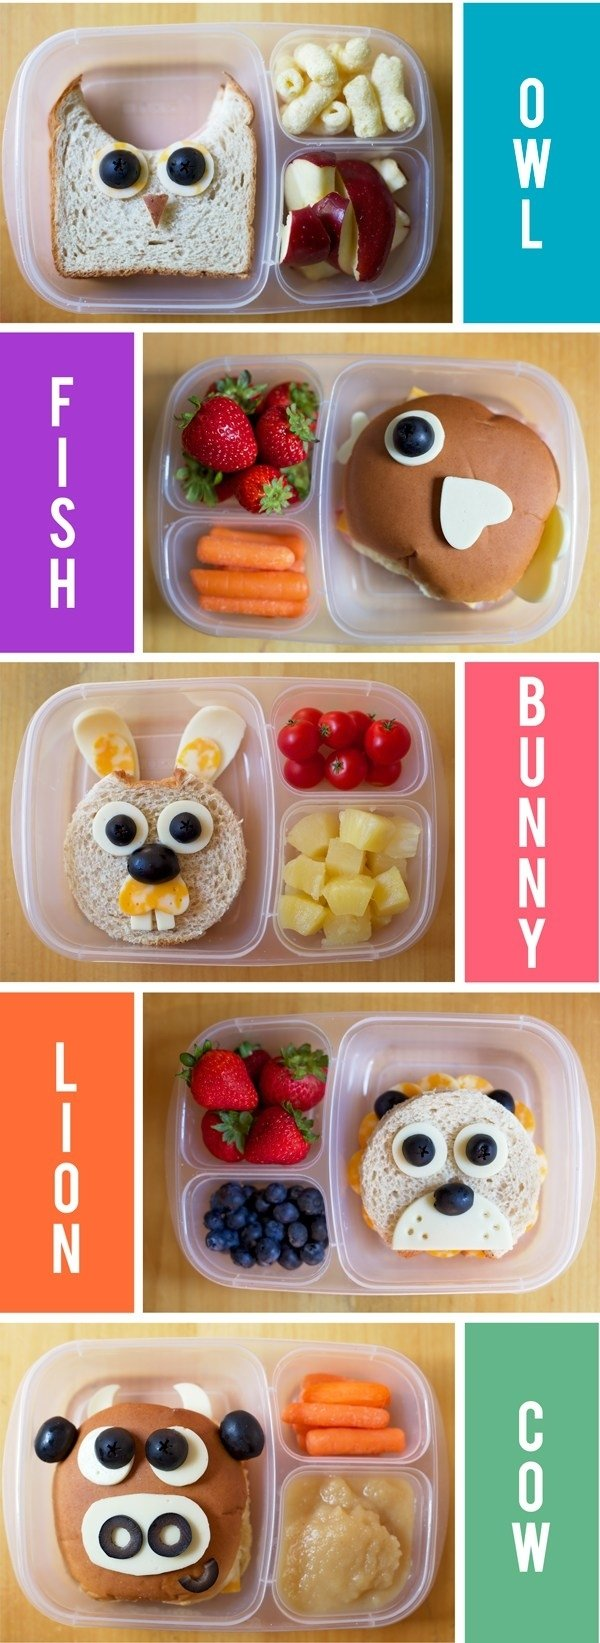 10 Amazing Good Lunch Ideas For Kids the best school lunch ideas for kids that are fun and easy 5 2020